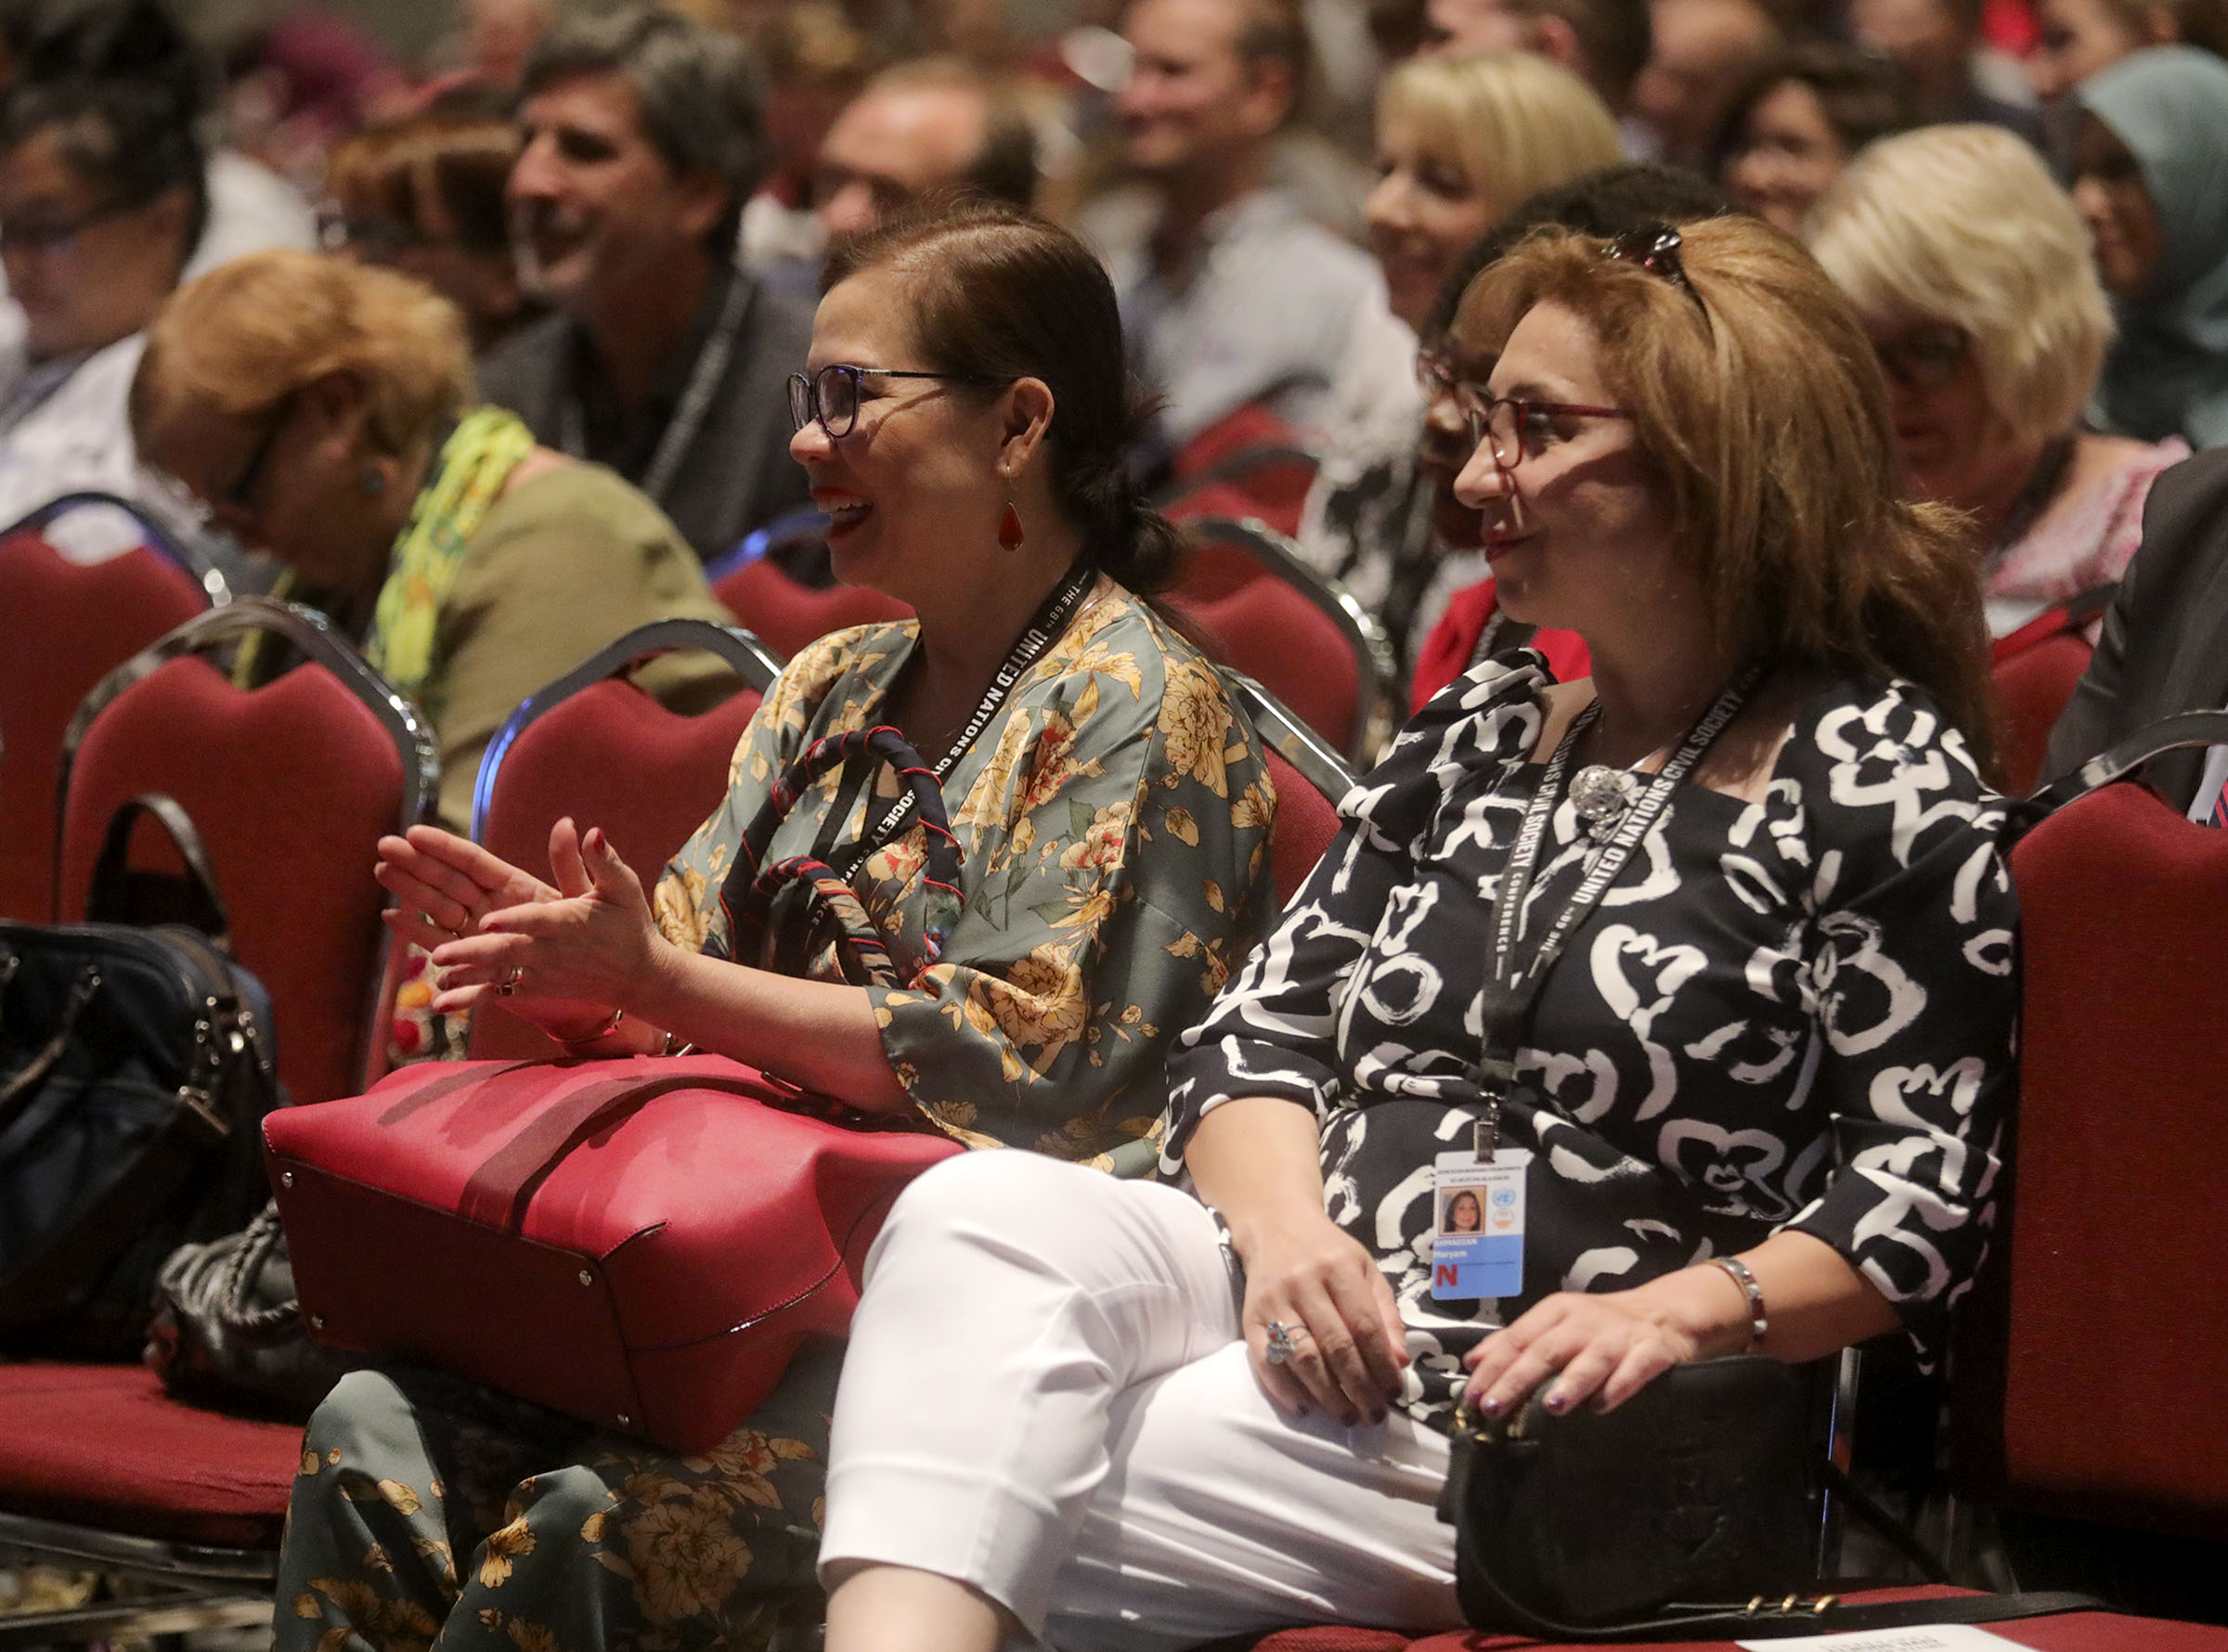 People listen to panelists during a thematic session titled Building Inclusive Communities Through Education at the 68th United Nations Civil Society Conference at the Salt Palace Convention Center in Salt Lake City on Monday, Aug. 26, 2019.